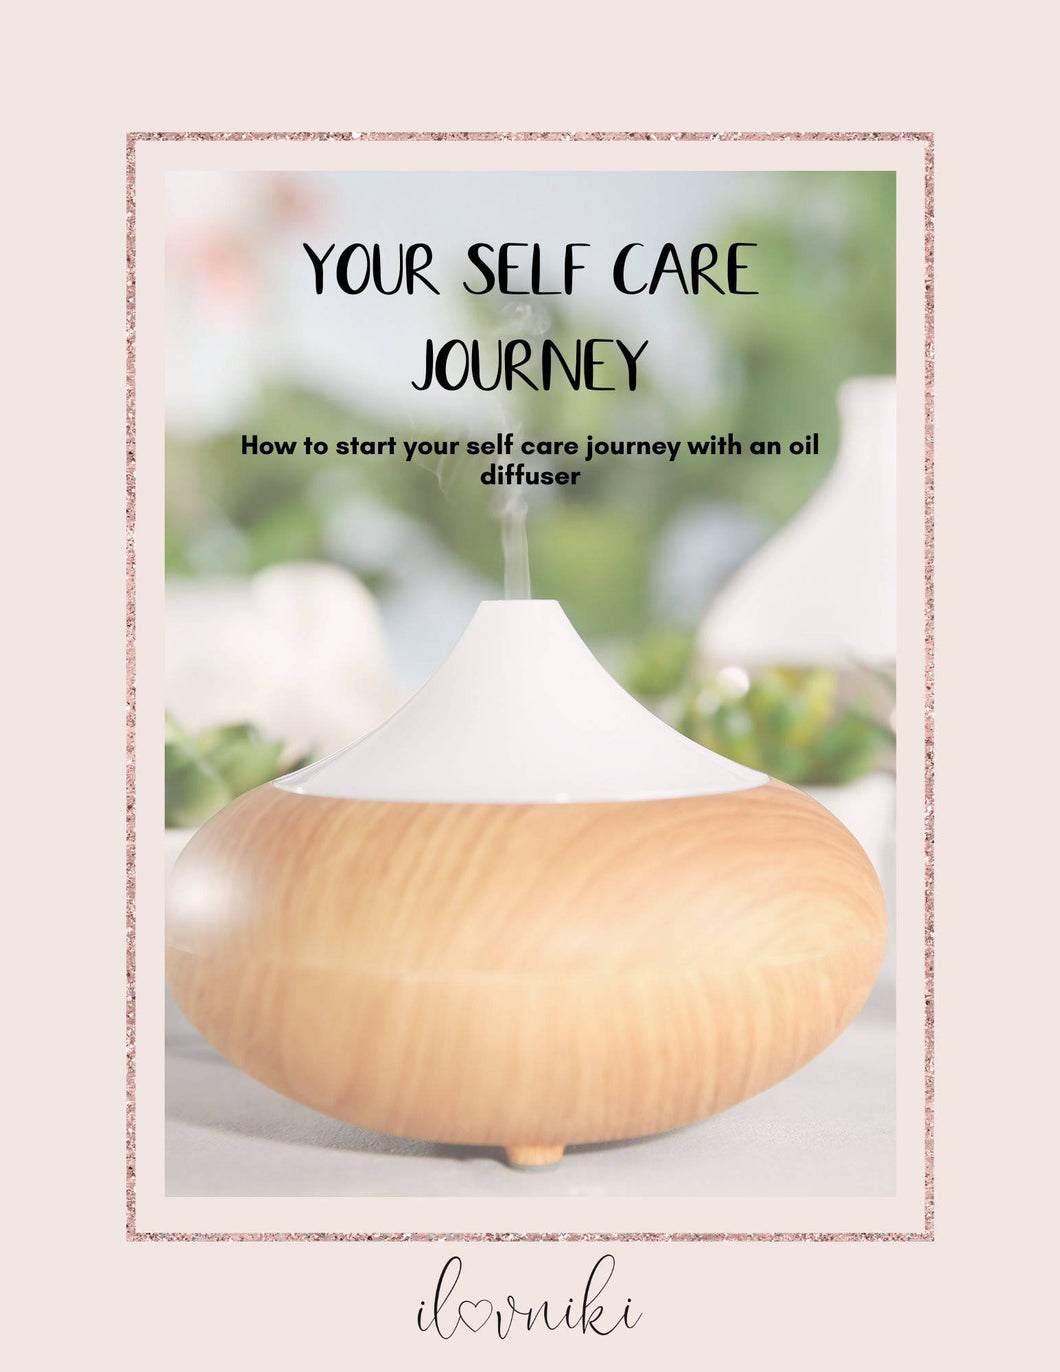 Self Care With an Oil Diffuser cover with Wood diffuser shown